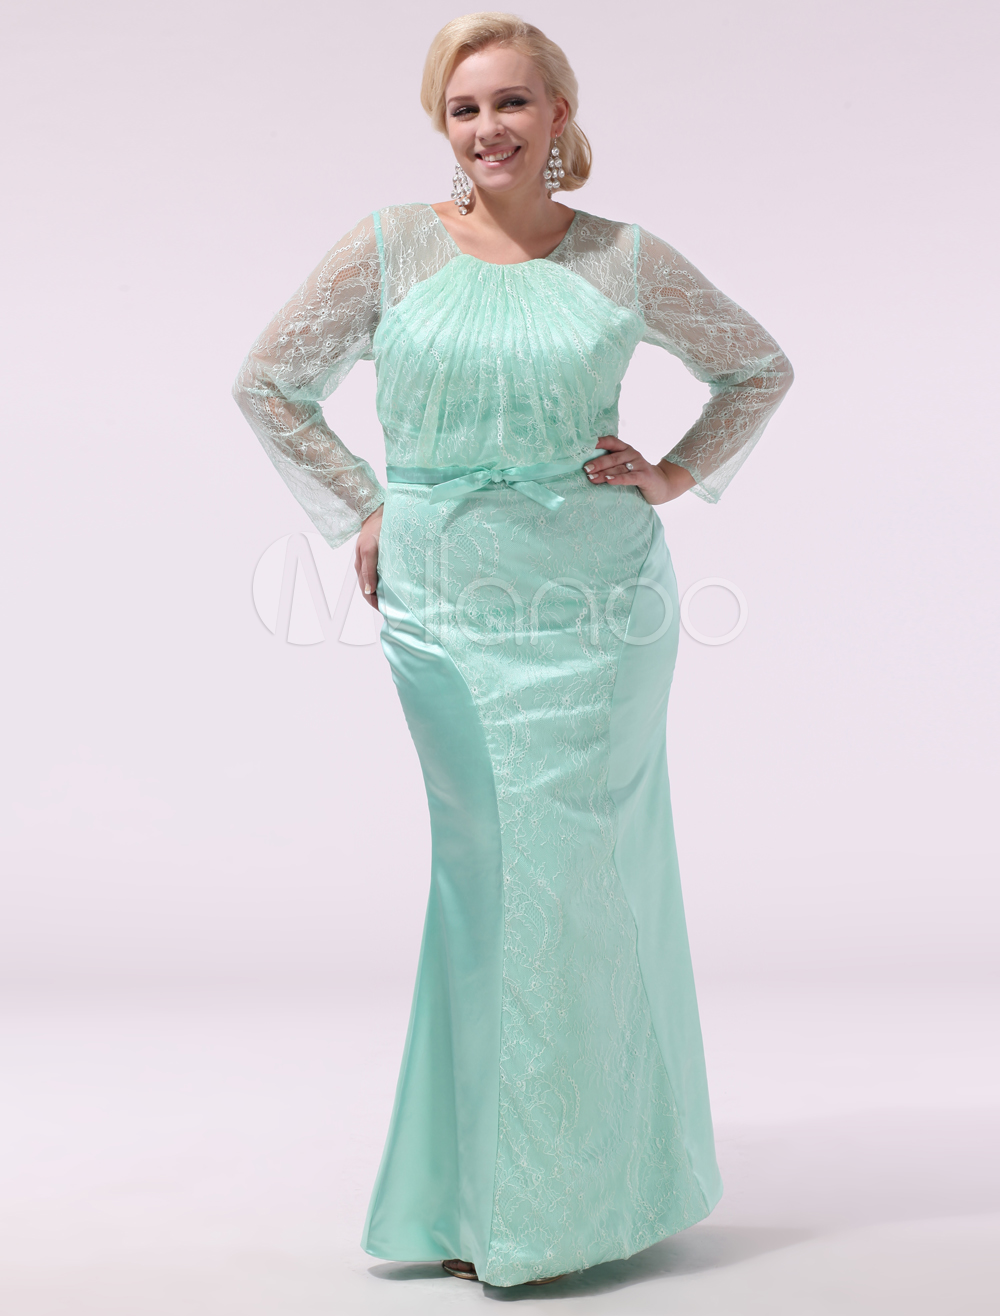 Plus Size Prom Dresses Mint Green Lace Long Sleeve Mermaid Bow Sash Floor  Length Evening Dress Milanoo